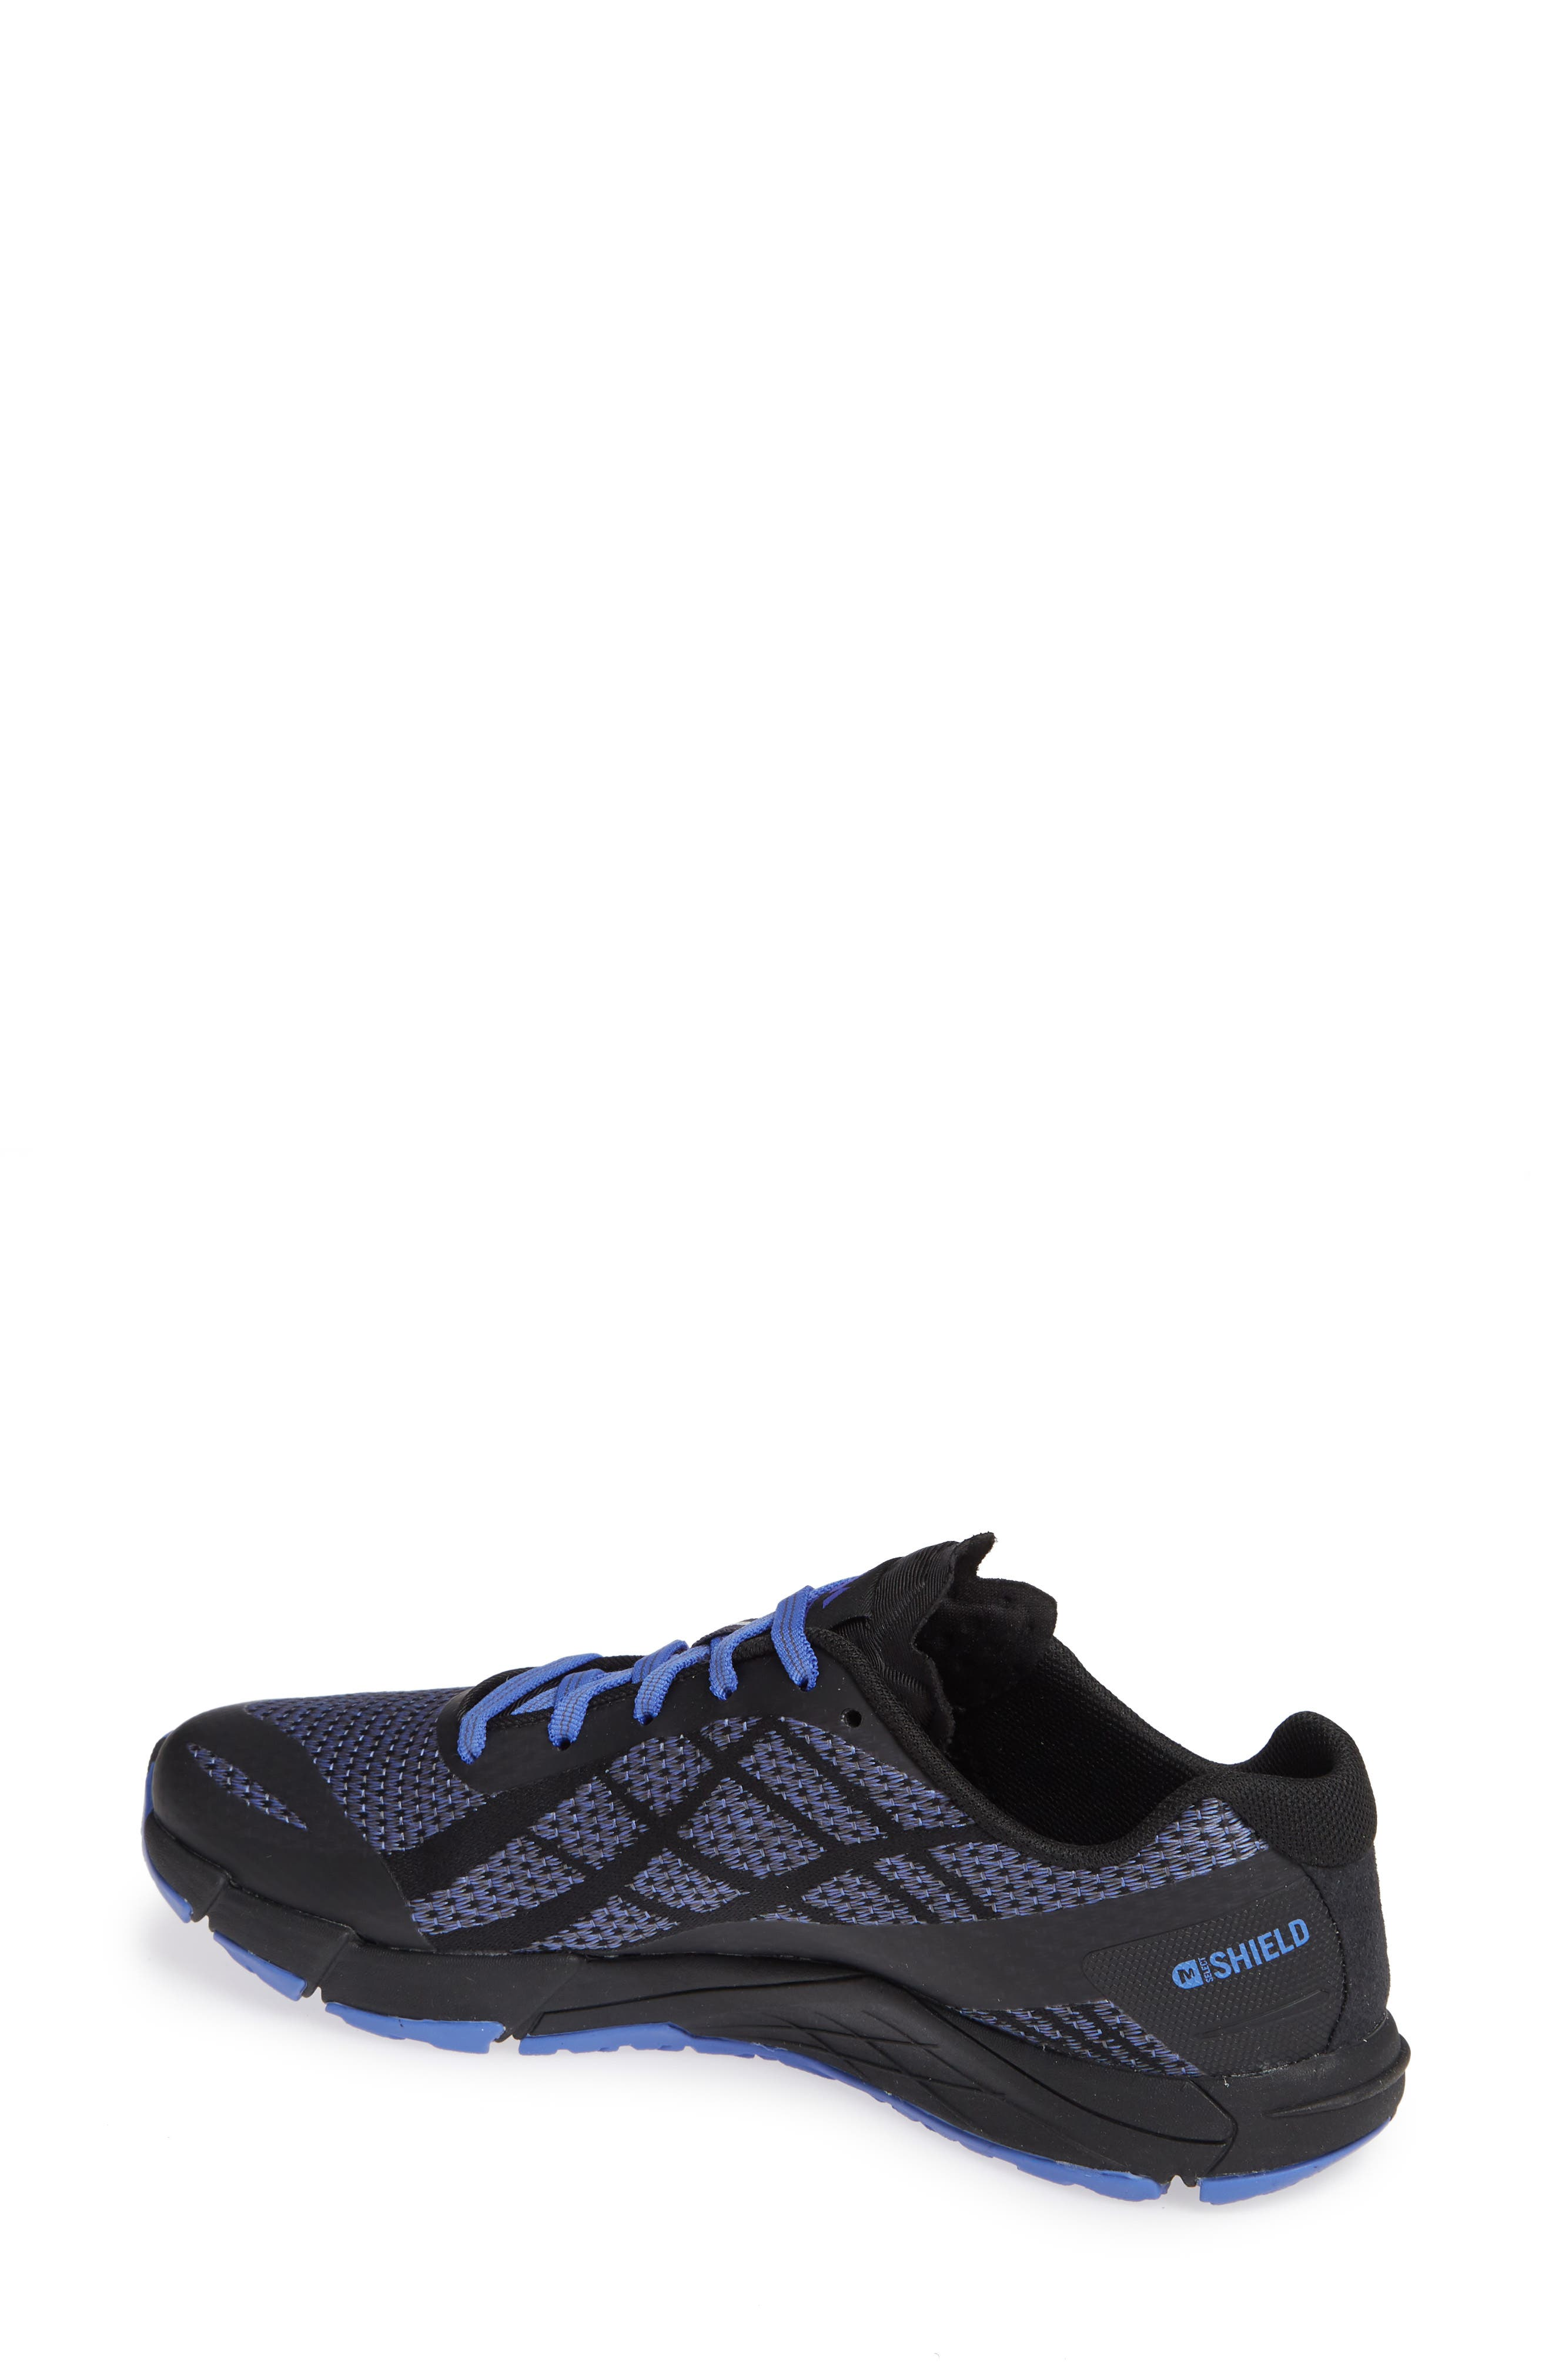 MERRELL,                             Bare Access Flex Shield Lace-Up Sneaker,                             Alternate thumbnail 2, color,                             BLACK AND WHITE FABRIC